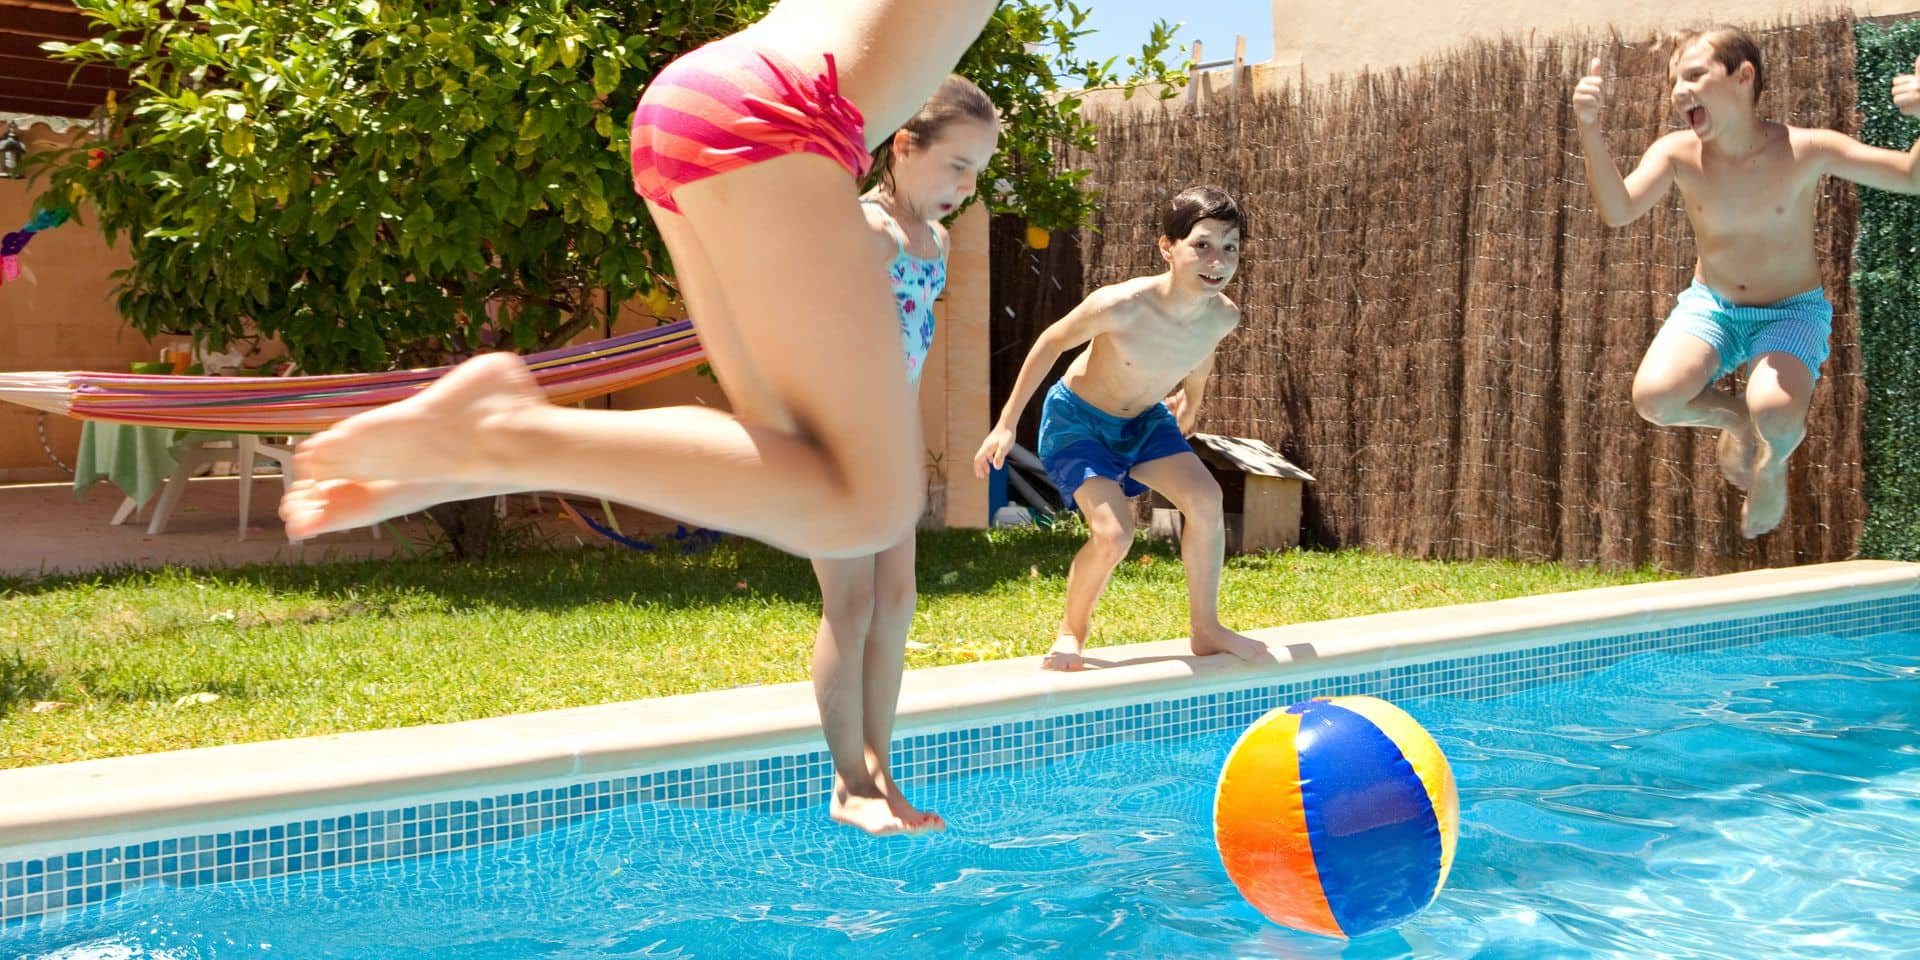 Group,Of,Joyful,Children,Jumping,In,A,Swimming,Pool,In